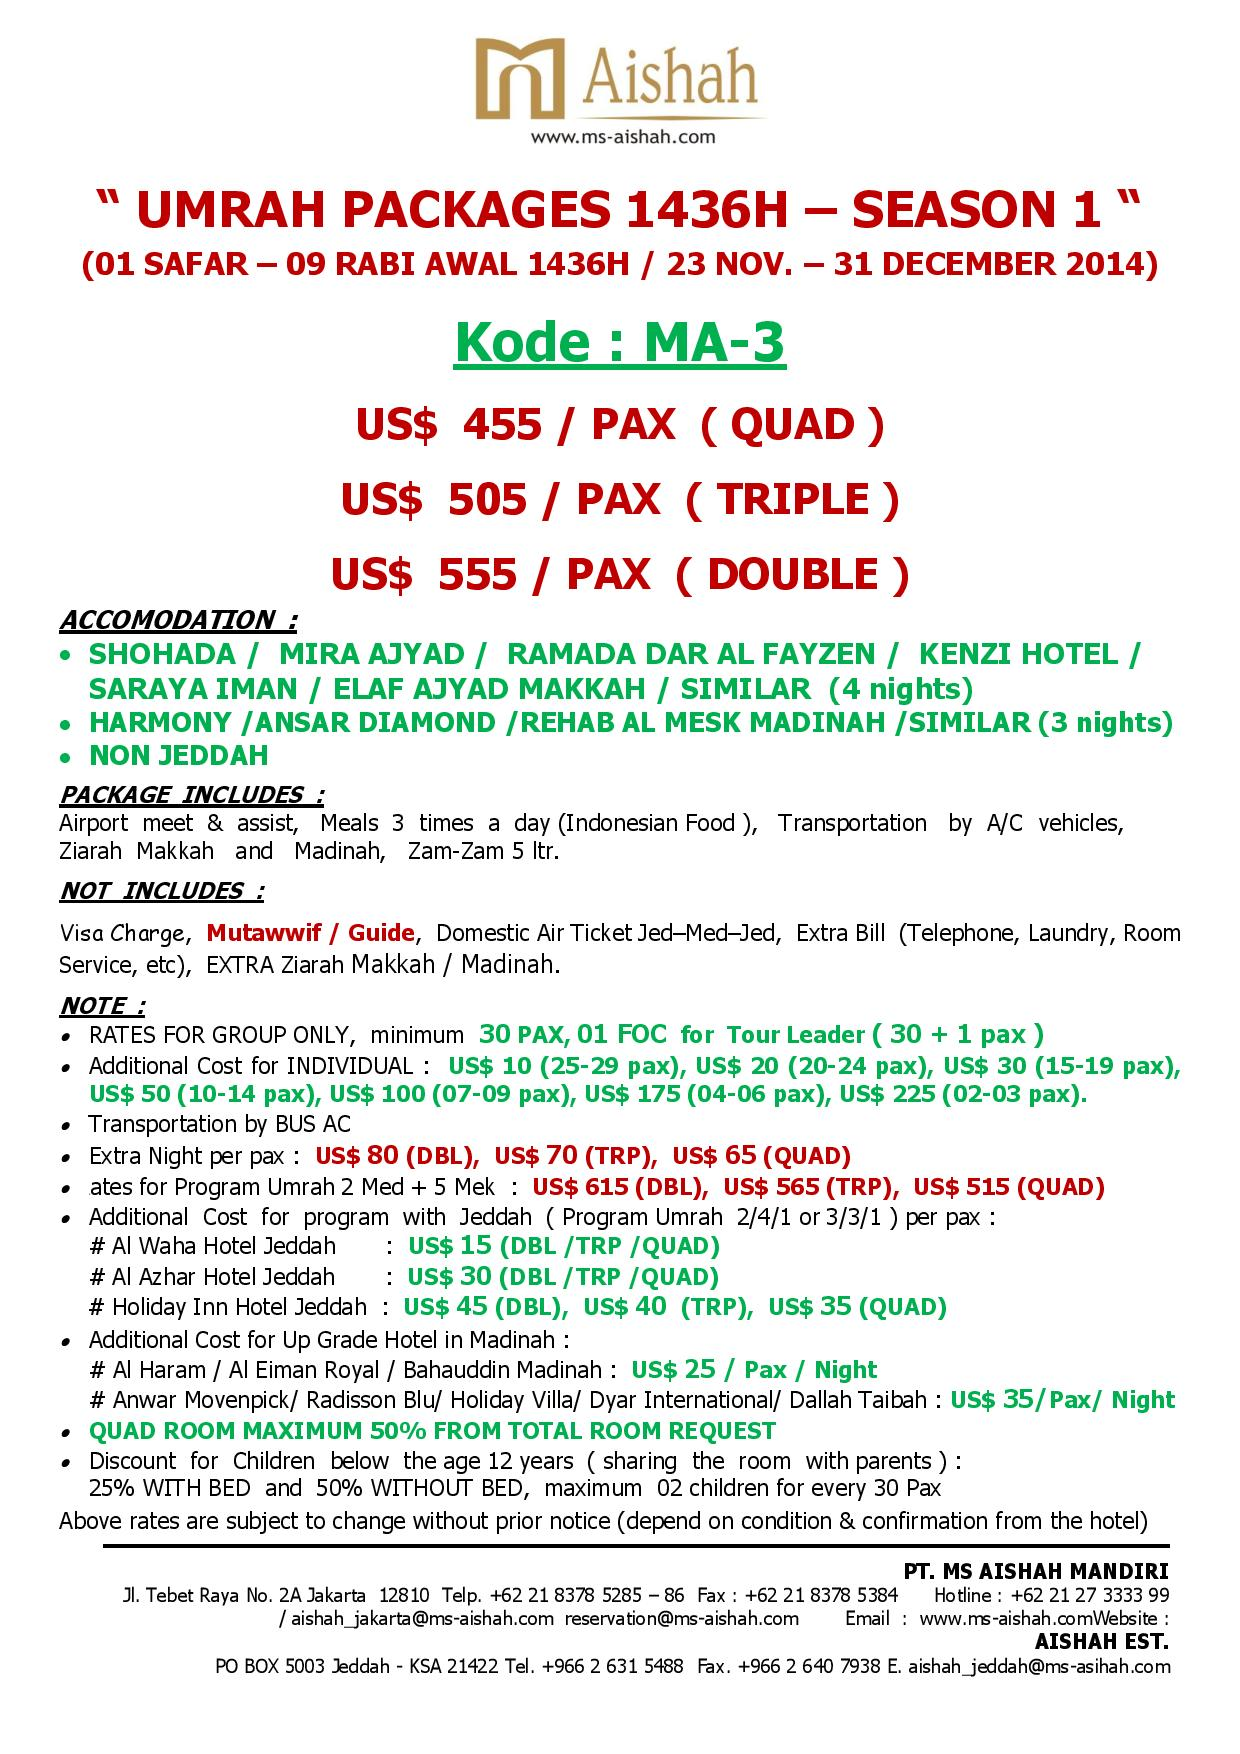 SPECIAL OFFER UMRAH 1436H SEASON 1 - 23 NOVEMBER - 31 DECEMBER 2014 --ma 3